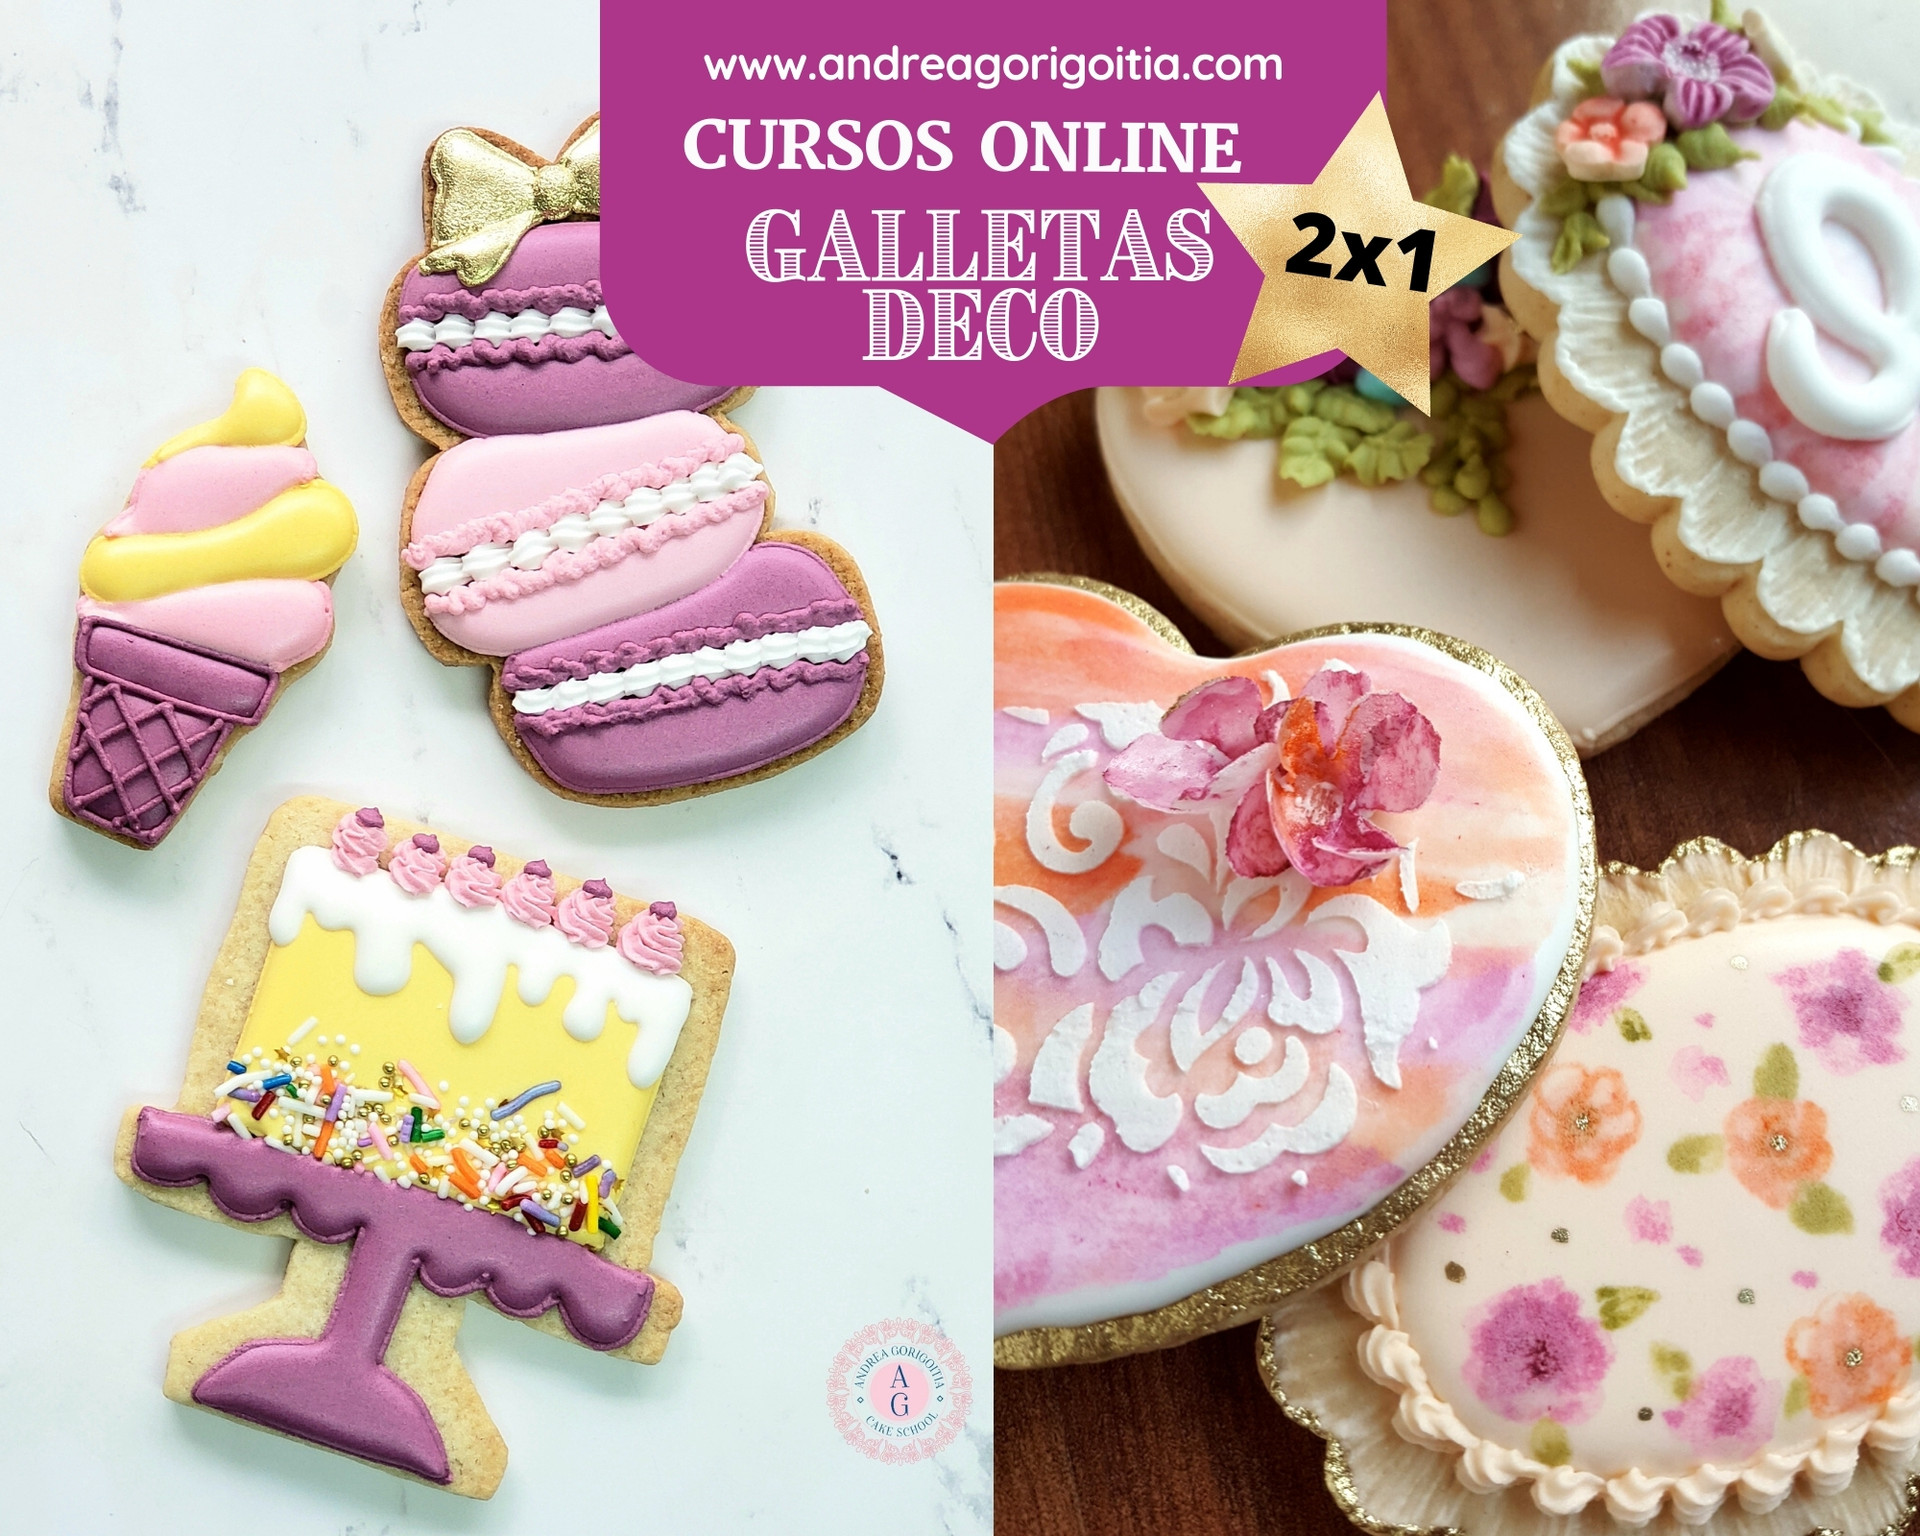 2x1 curso Galletas Decoradas